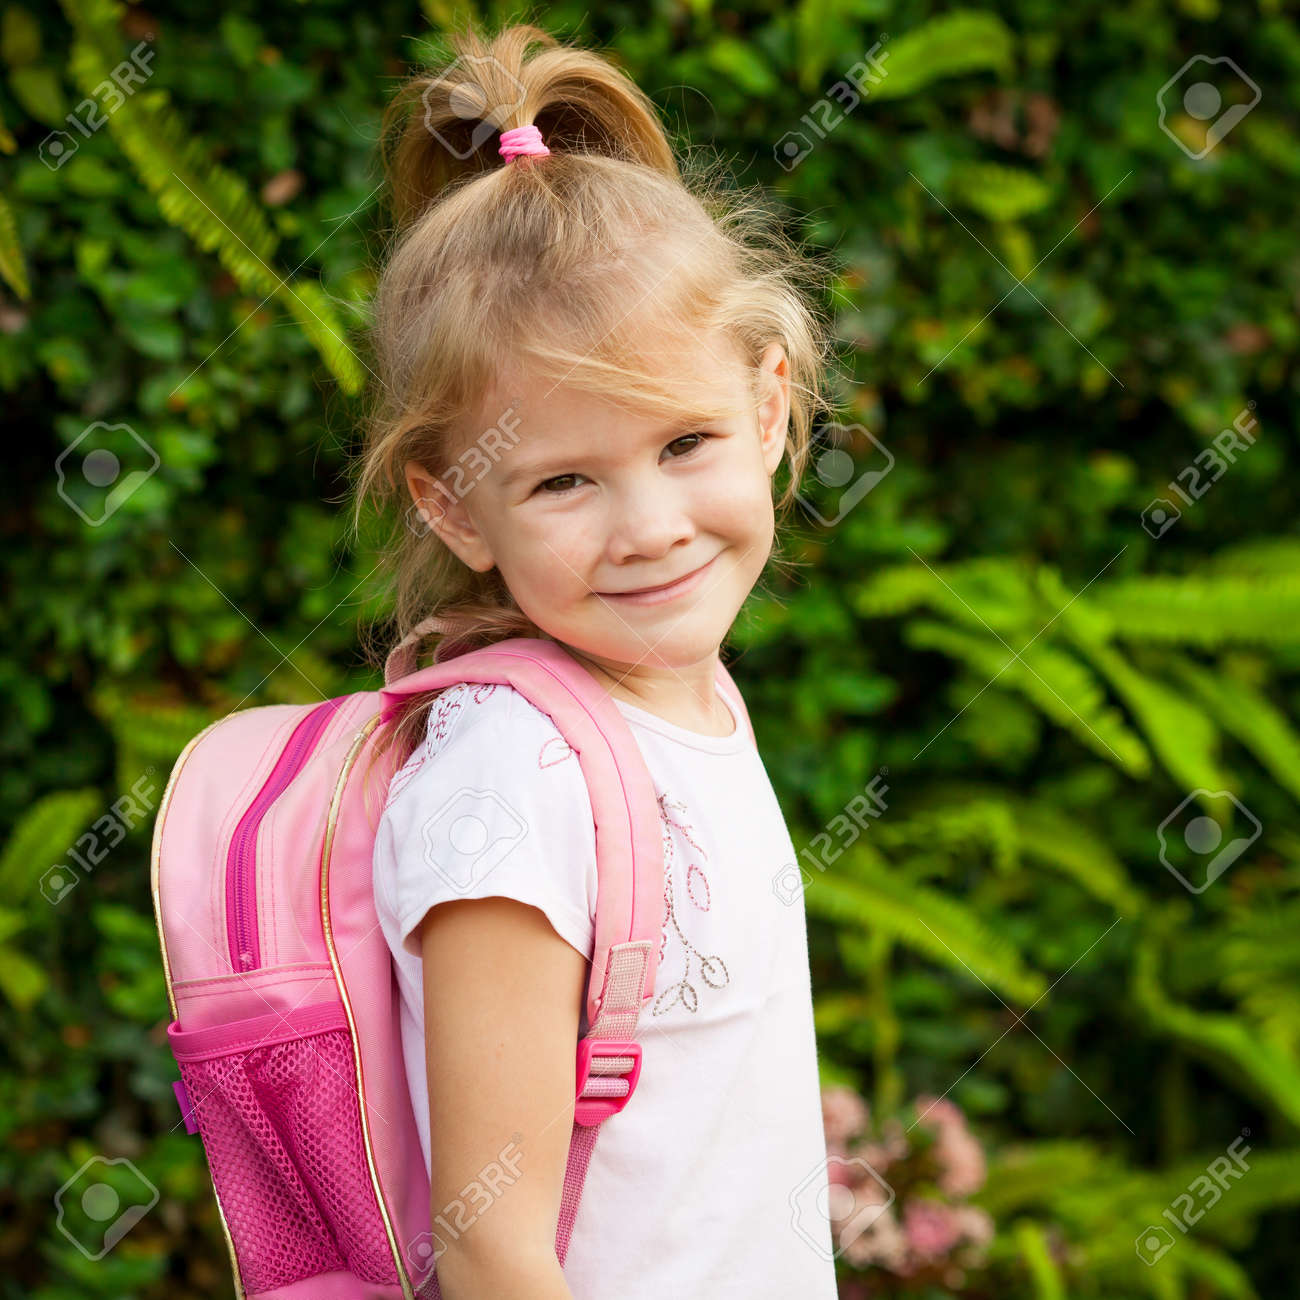 Young little girl pic school images 49